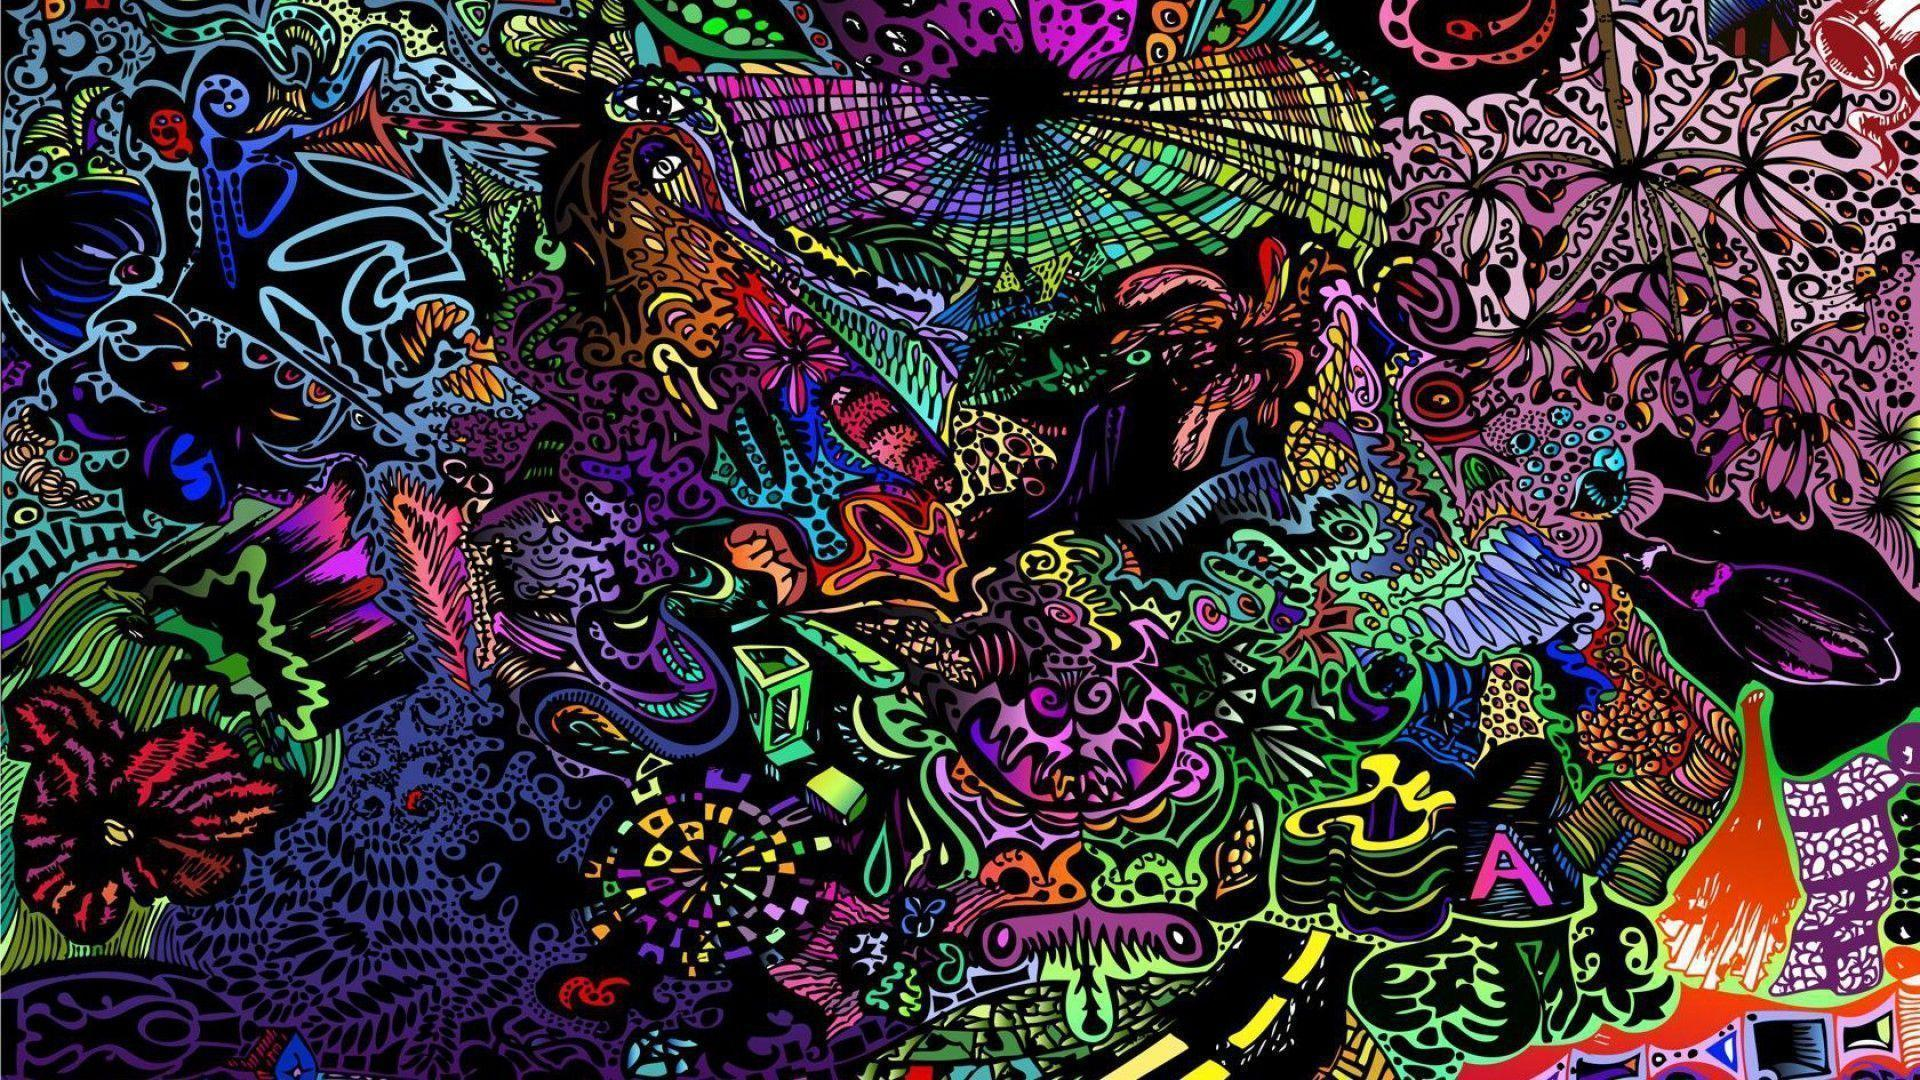 psychedelic hd 1080 wallpapers sexy - photo #7